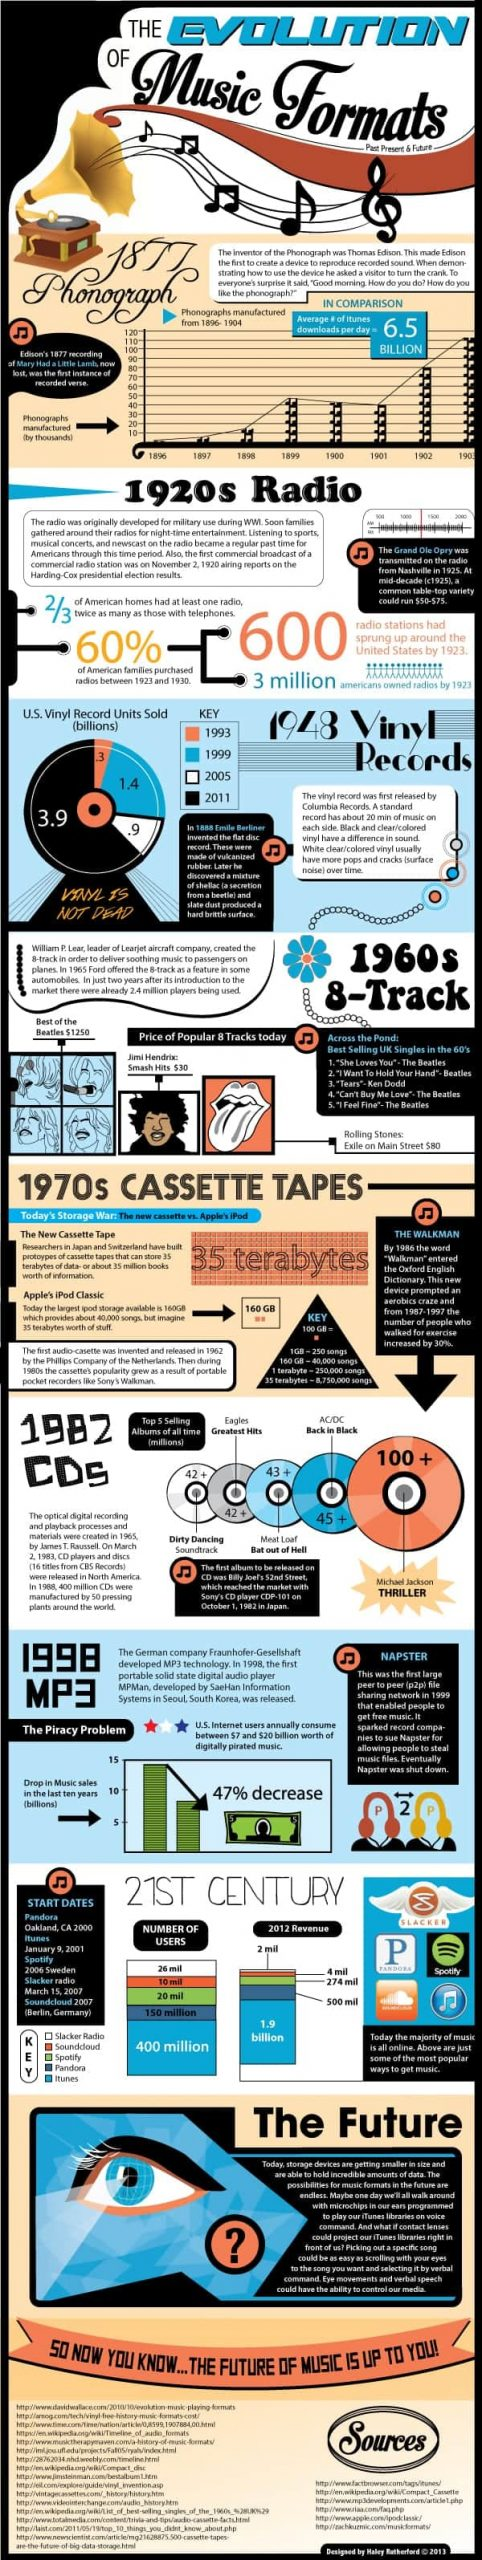 The Evolution of Music Formats